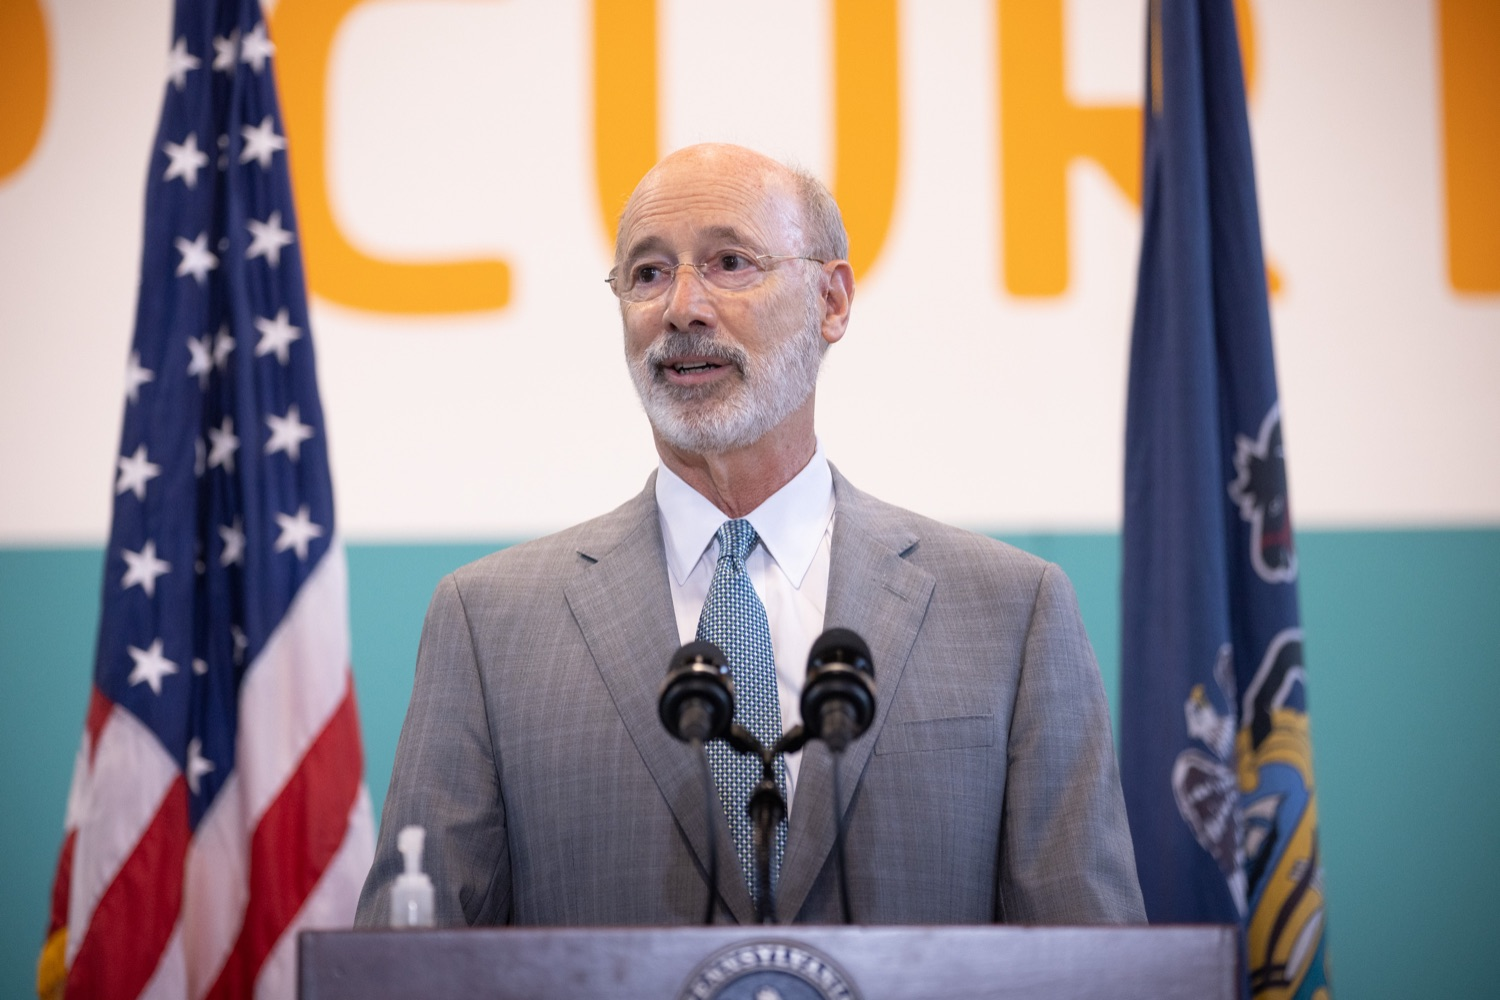 """<a href=""""https://filesource.wostreaming.net/commonwealthofpa/photo/18815_gov_voterRights_dz_003.jpg"""" target=""""_blank"""">⇣Download Photo<br></a>Pennsylvania Governor Tom Wolf speaking with the press.  With some politicians spreading lies about our elections to divide us, Governor Tom Wolf today vowed to protect the freedom to vote and oppose legislation that would create barriers to voting and silence the voices of some Pennsylvanians. These are the same lies that led directly to the appalling assault on our U.S. Capitol and our democracy on January 6, and now, just a few short months later, the same people who fomented, encouraged, and joined that mob are again emerging to undermine the fabric of our nation.   Harrisburg, PA  June 9, 2021"""